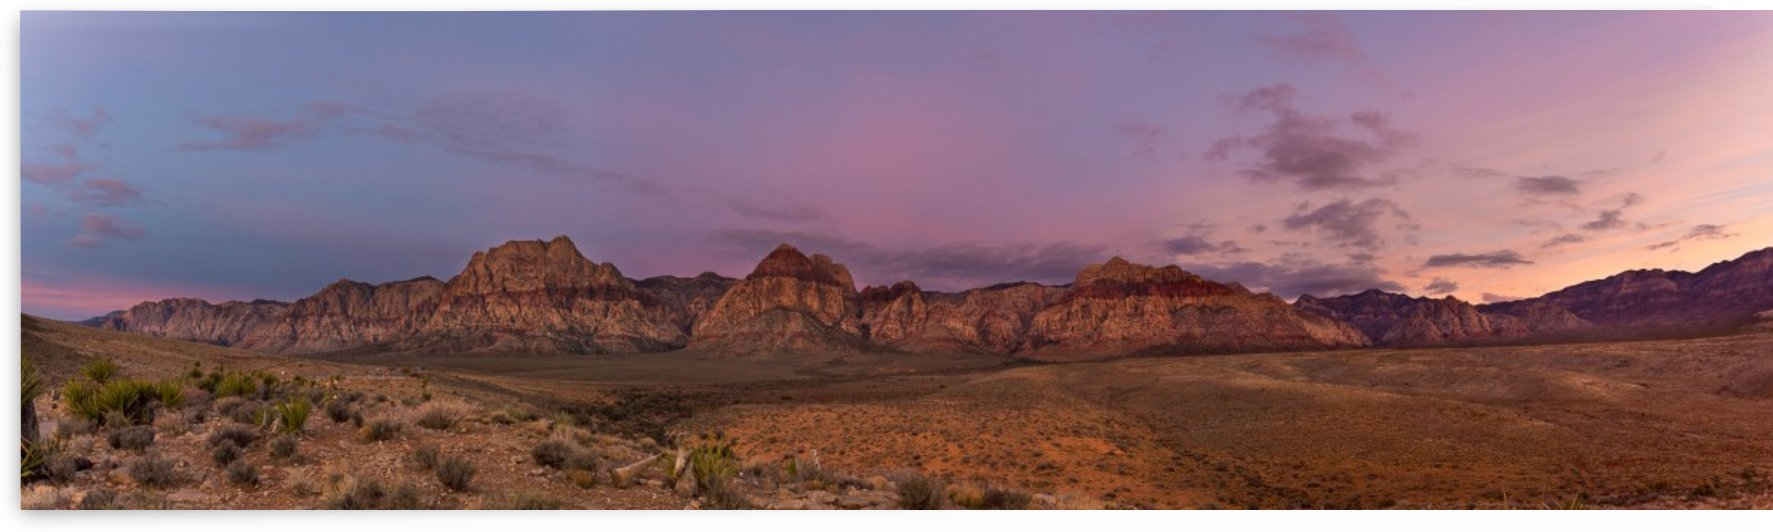 Pano of Red Rock Mt. by Noah E Geist